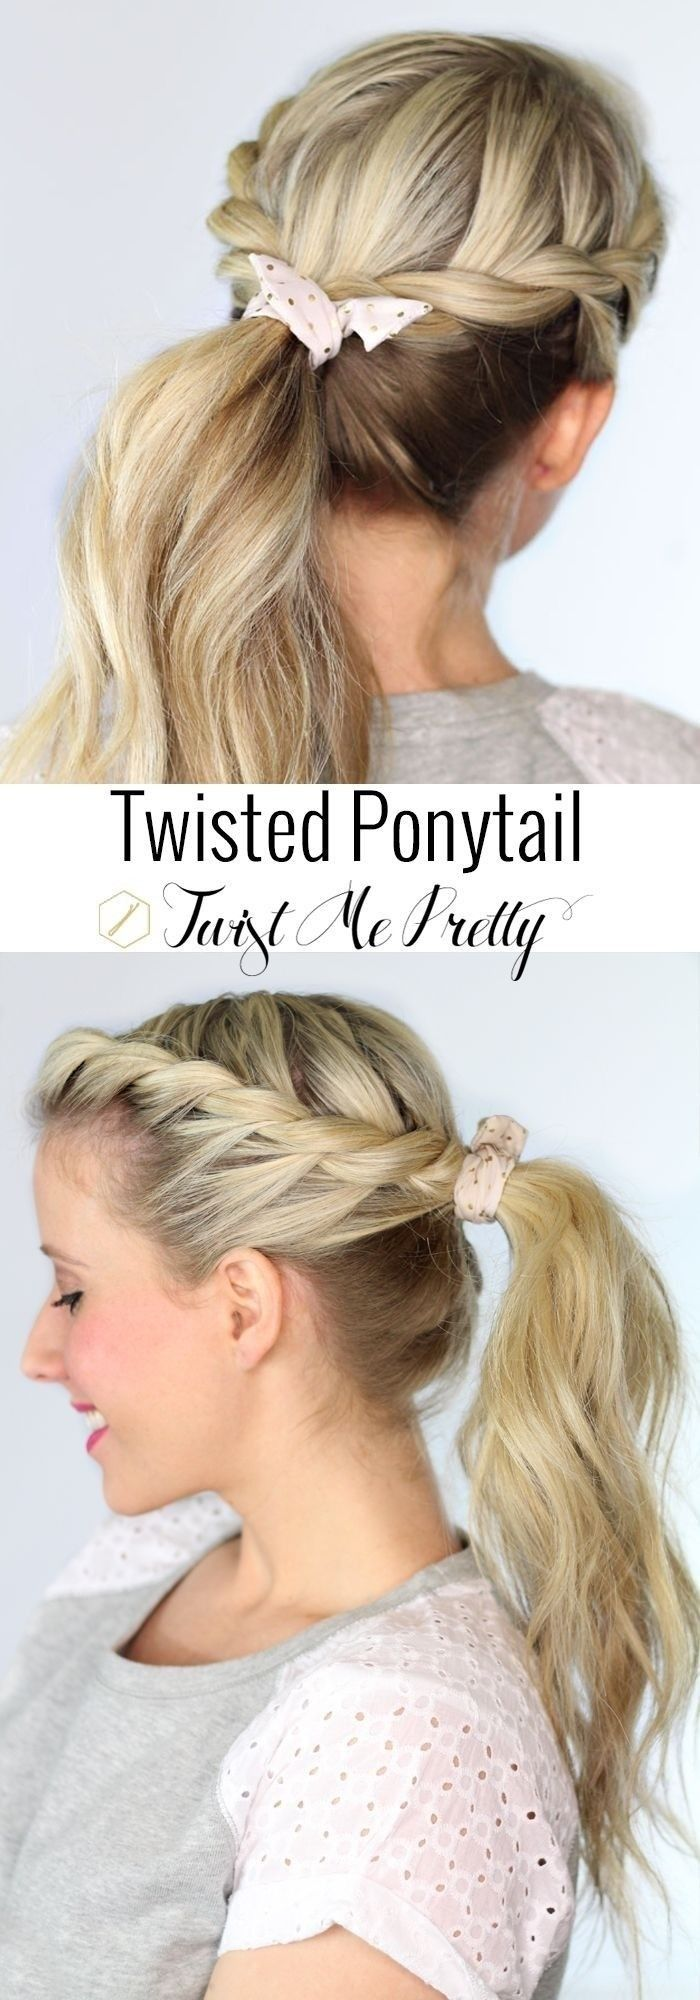 22 Great Ponytail Hairstyles for Girls